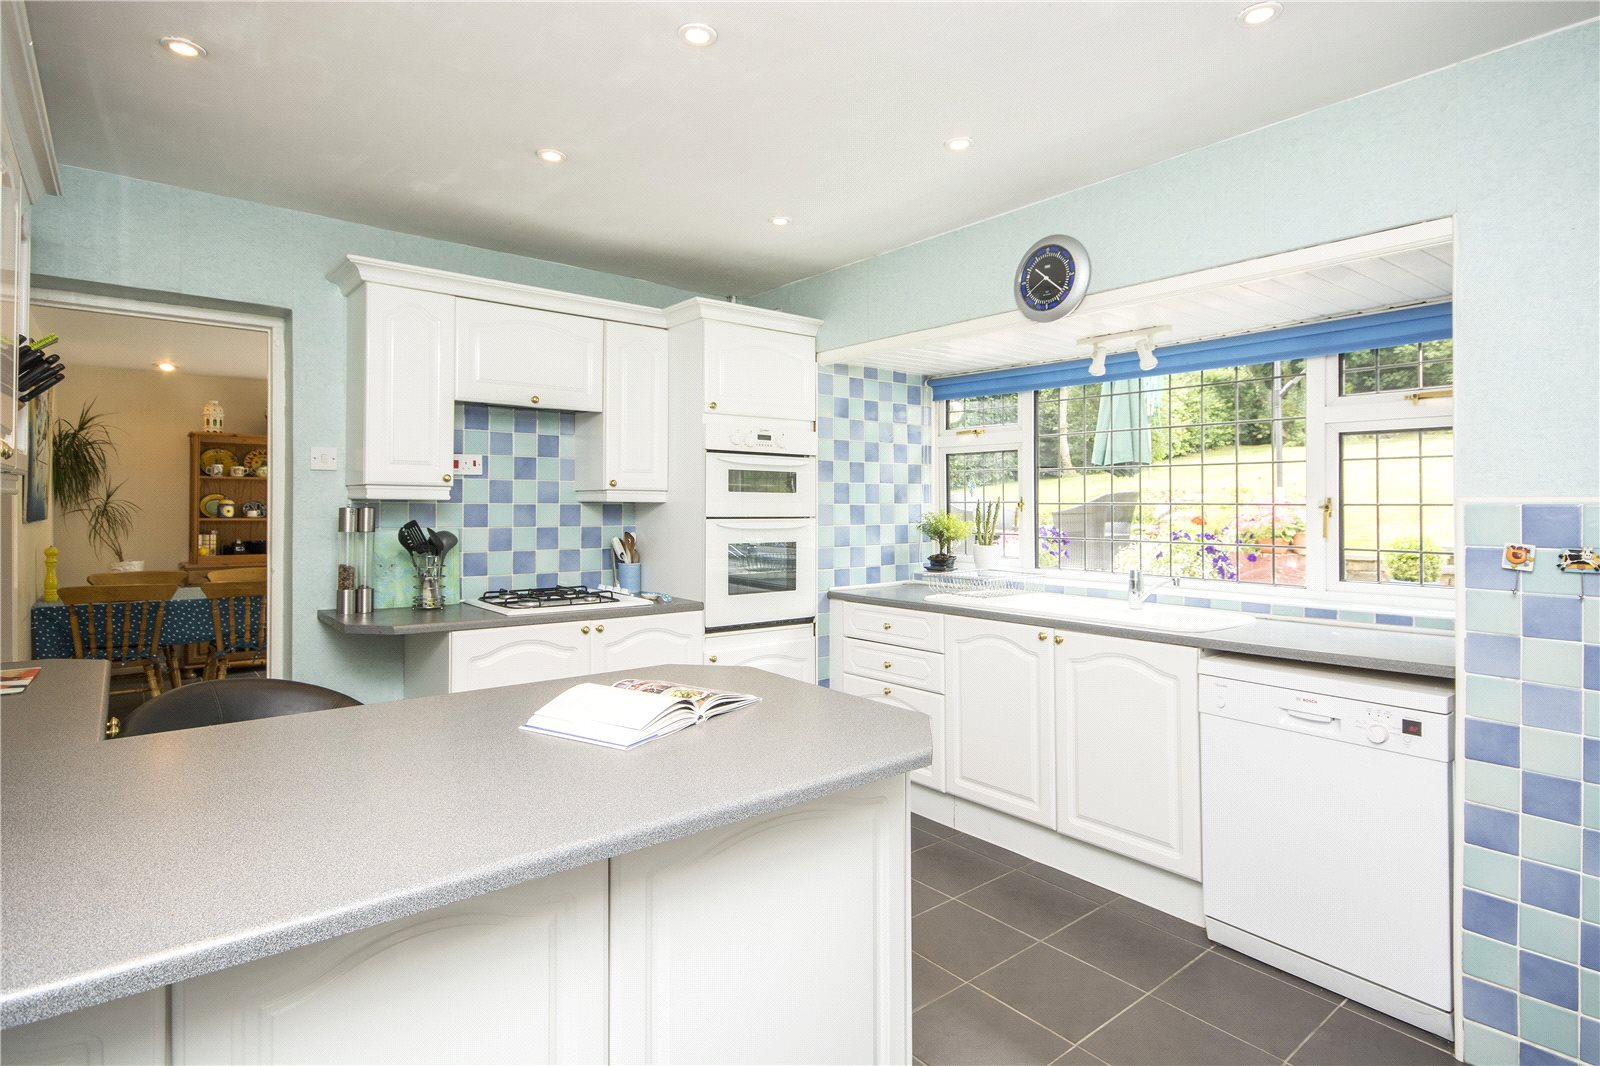 Additional photo for property listing at Claydon End, Chalfont St Peter, Gerrards Cross, Buckinghamshire, SL9 Gerrards Cross, Αγγλια